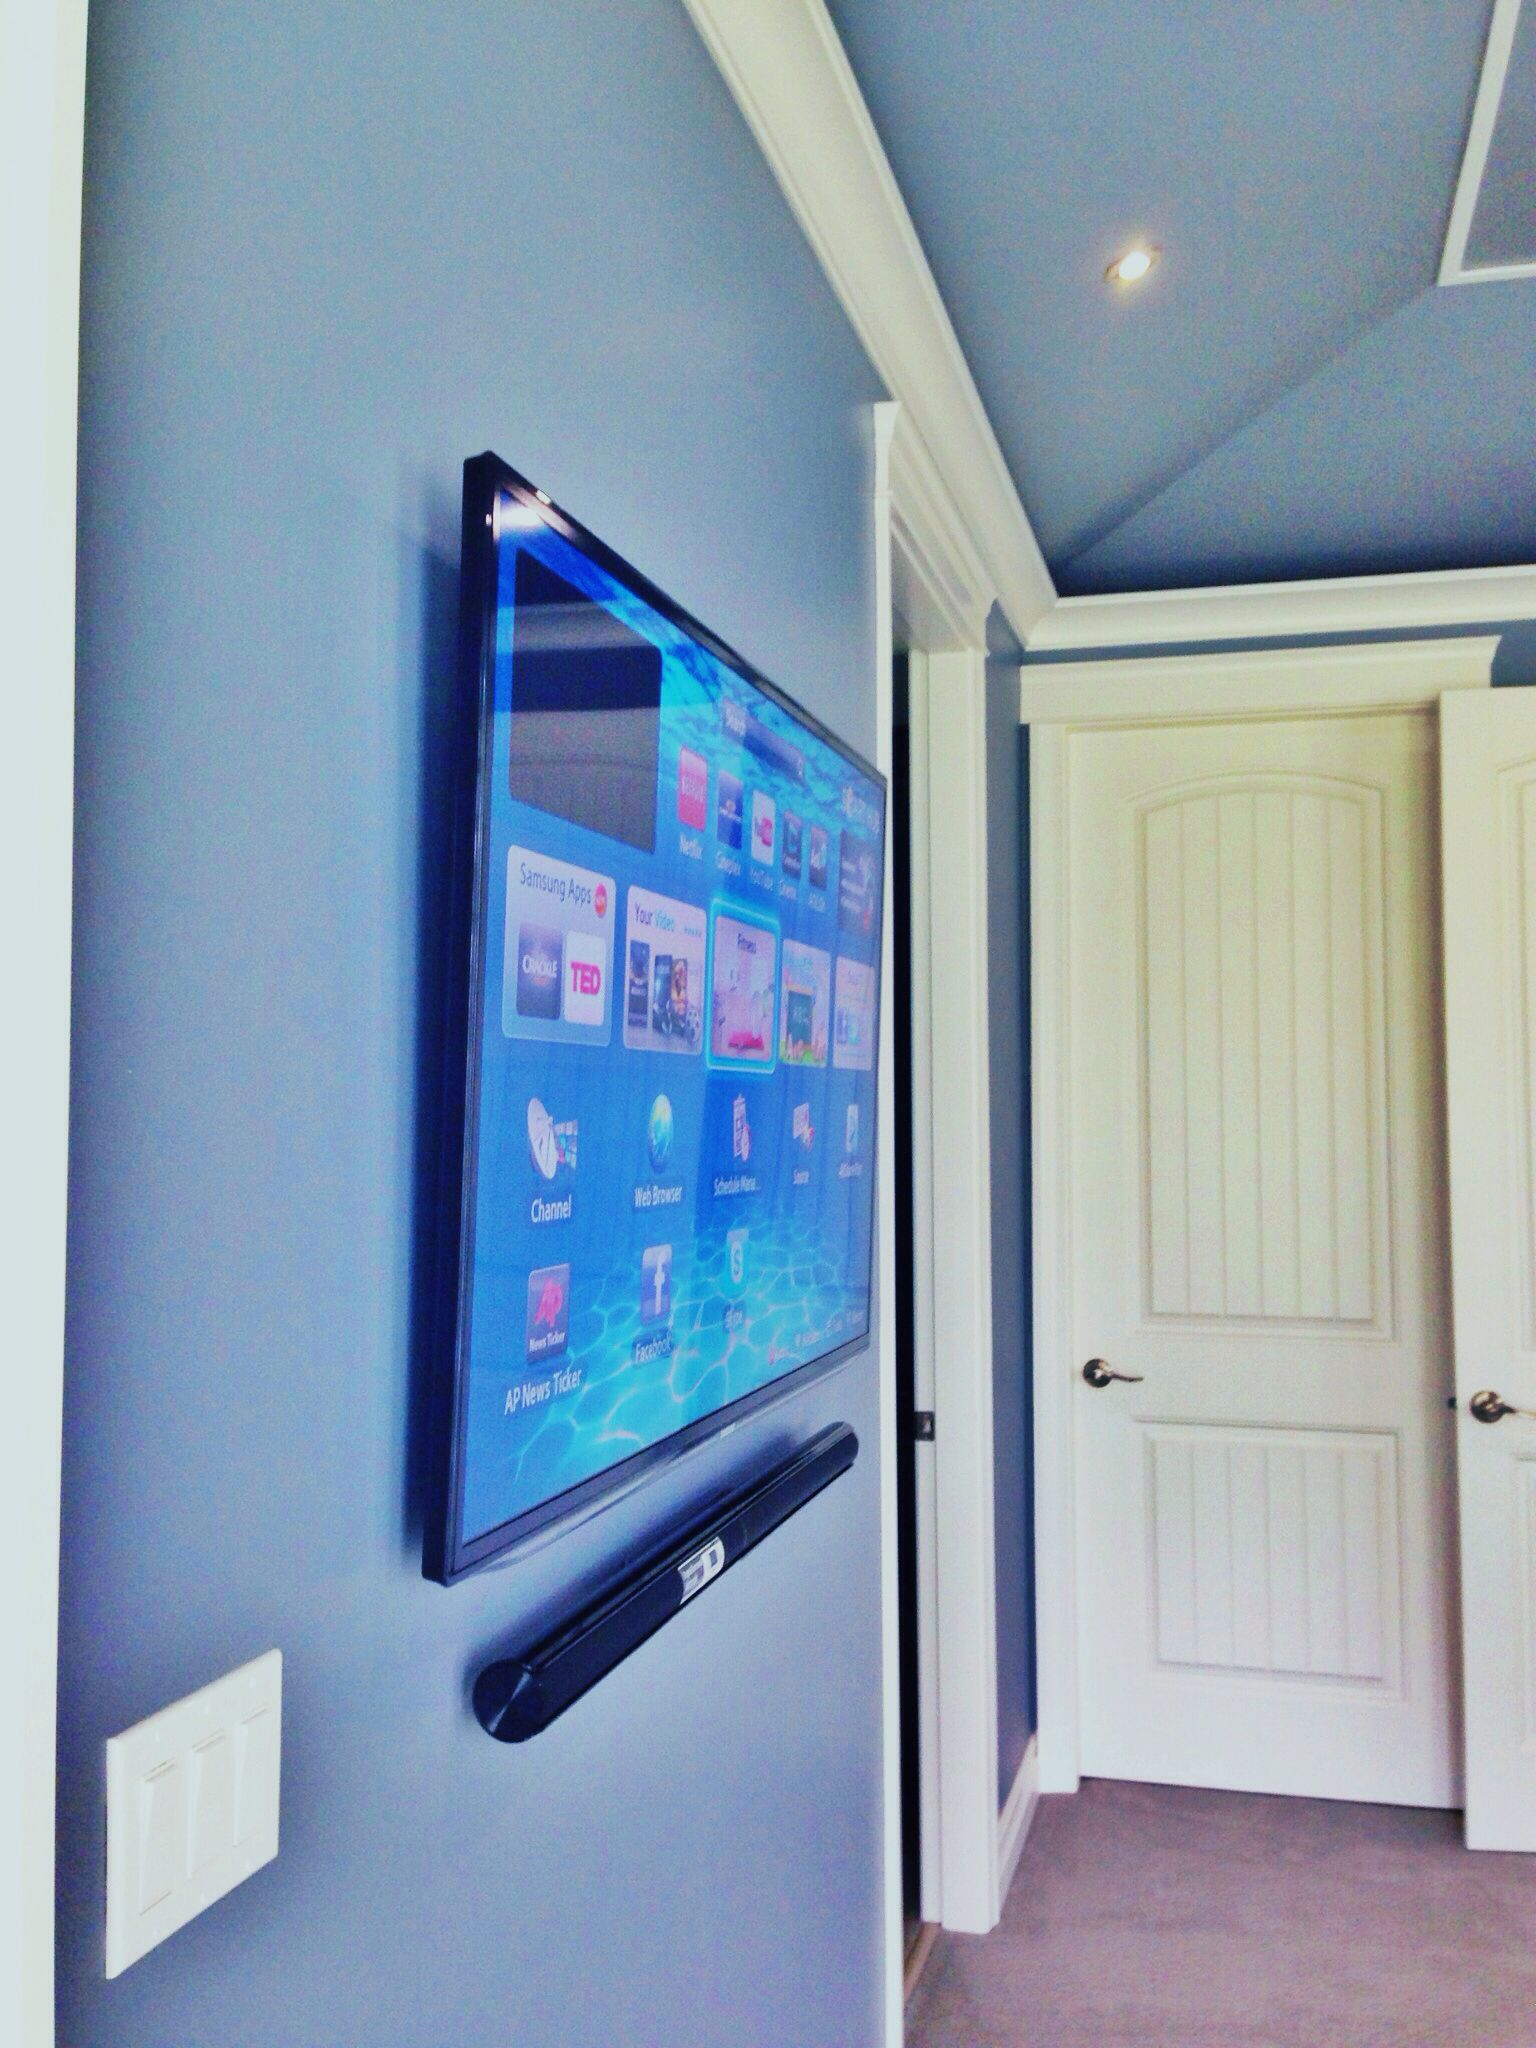 Thinnest Wall Mount Tv Bracket With Wall Mount Low Profile Samsung Surround Bar Wall Mounted Tv Tv Bracket Swivel Tv Stand